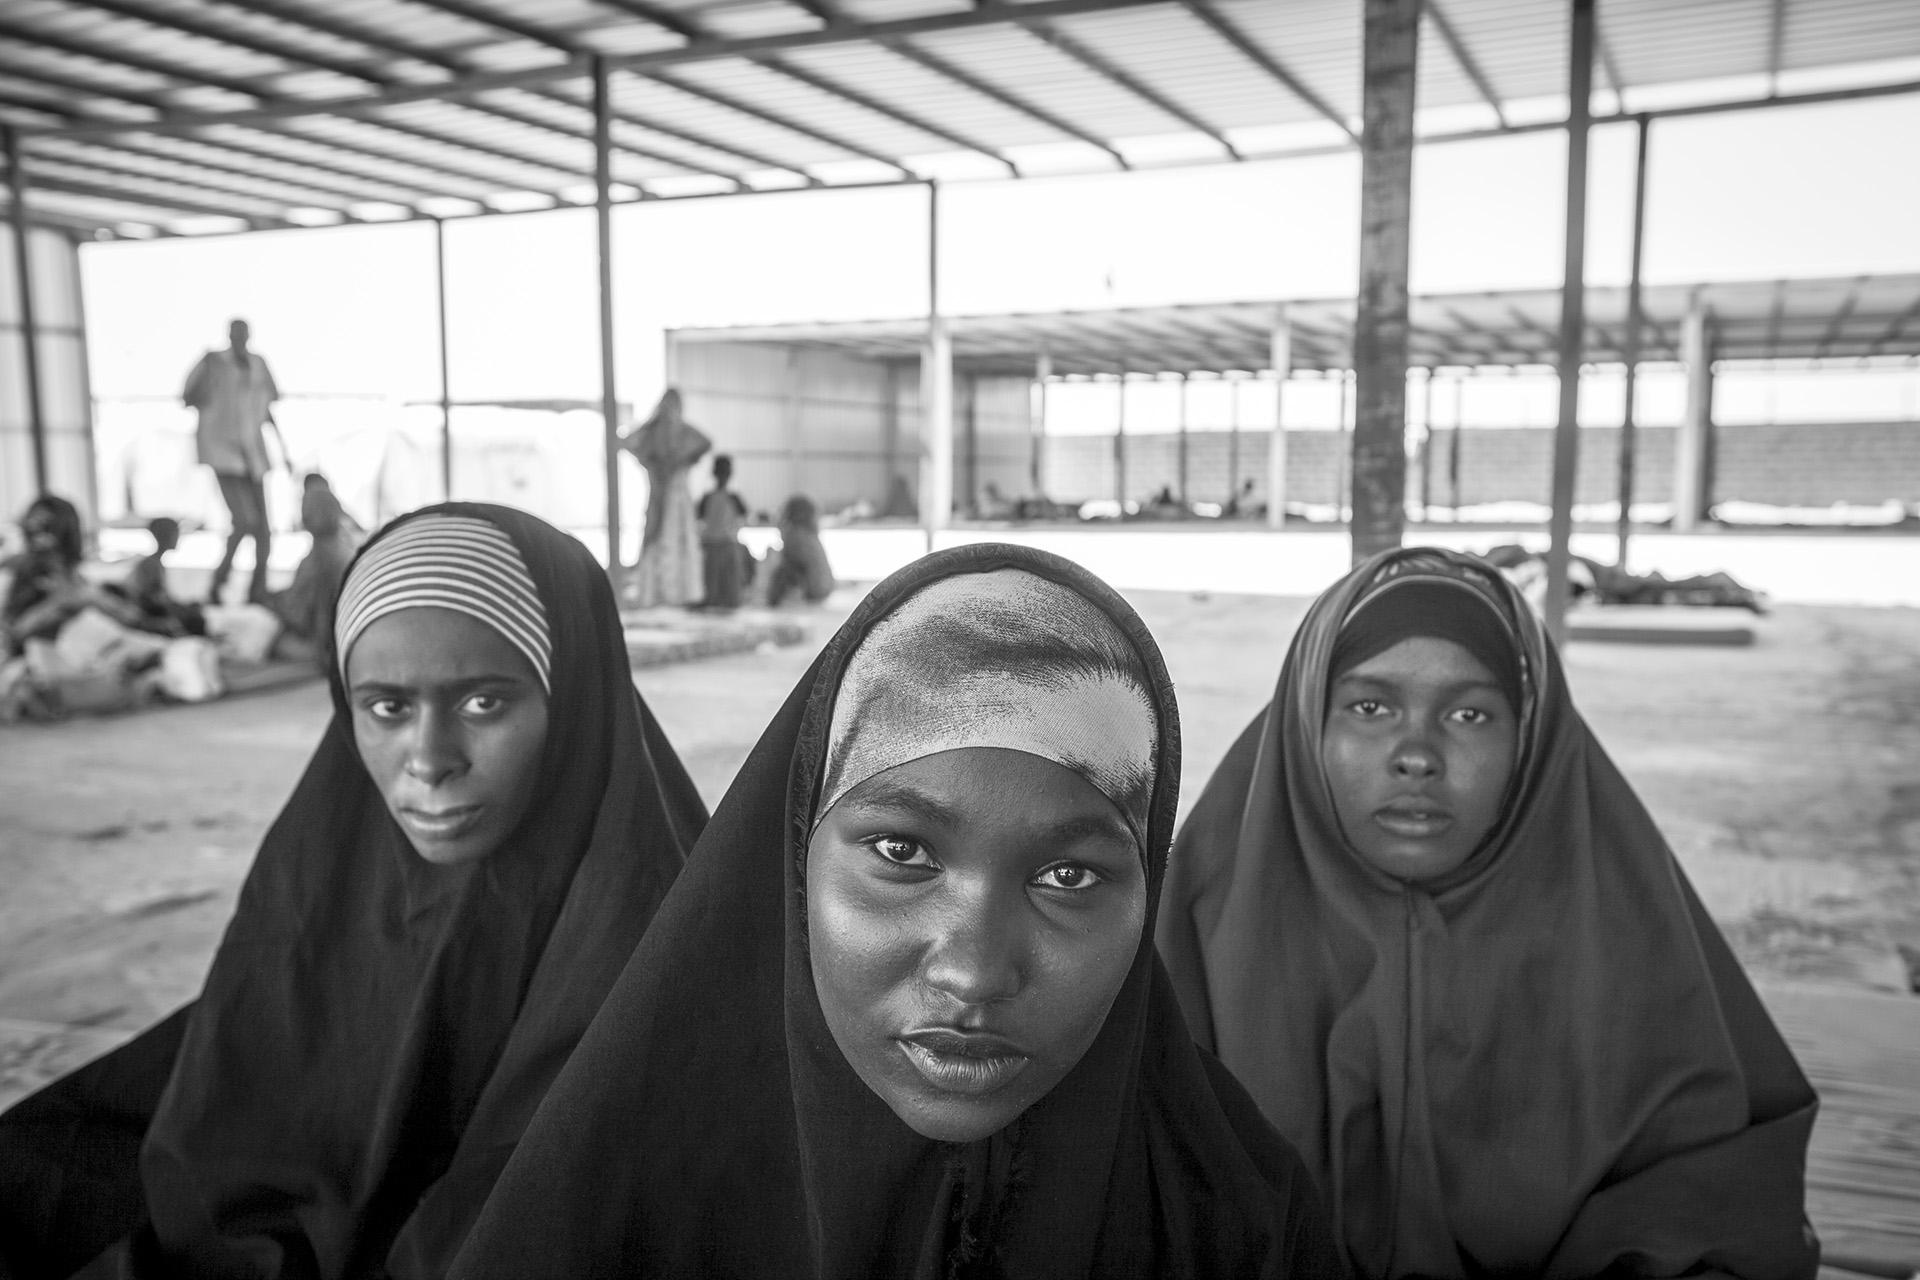 Refugees recuperate at a reception center in Ahwar the day after their arrival at the Yemeni coast from Somalia. Two sisters and a cousin traveled together from Mogadishu to Bosasso, Somaliland, then to Yemen. After being ejected into the open water in total darkness of a moonless night, they called to each other to stay alive. After recovery, they will either try to find work in Yemen, the poorest nation in Middle East in the middle of the civil war in the world's worst humanitarian crisis, or get smuggled into other countries such as Saudi Arabia.